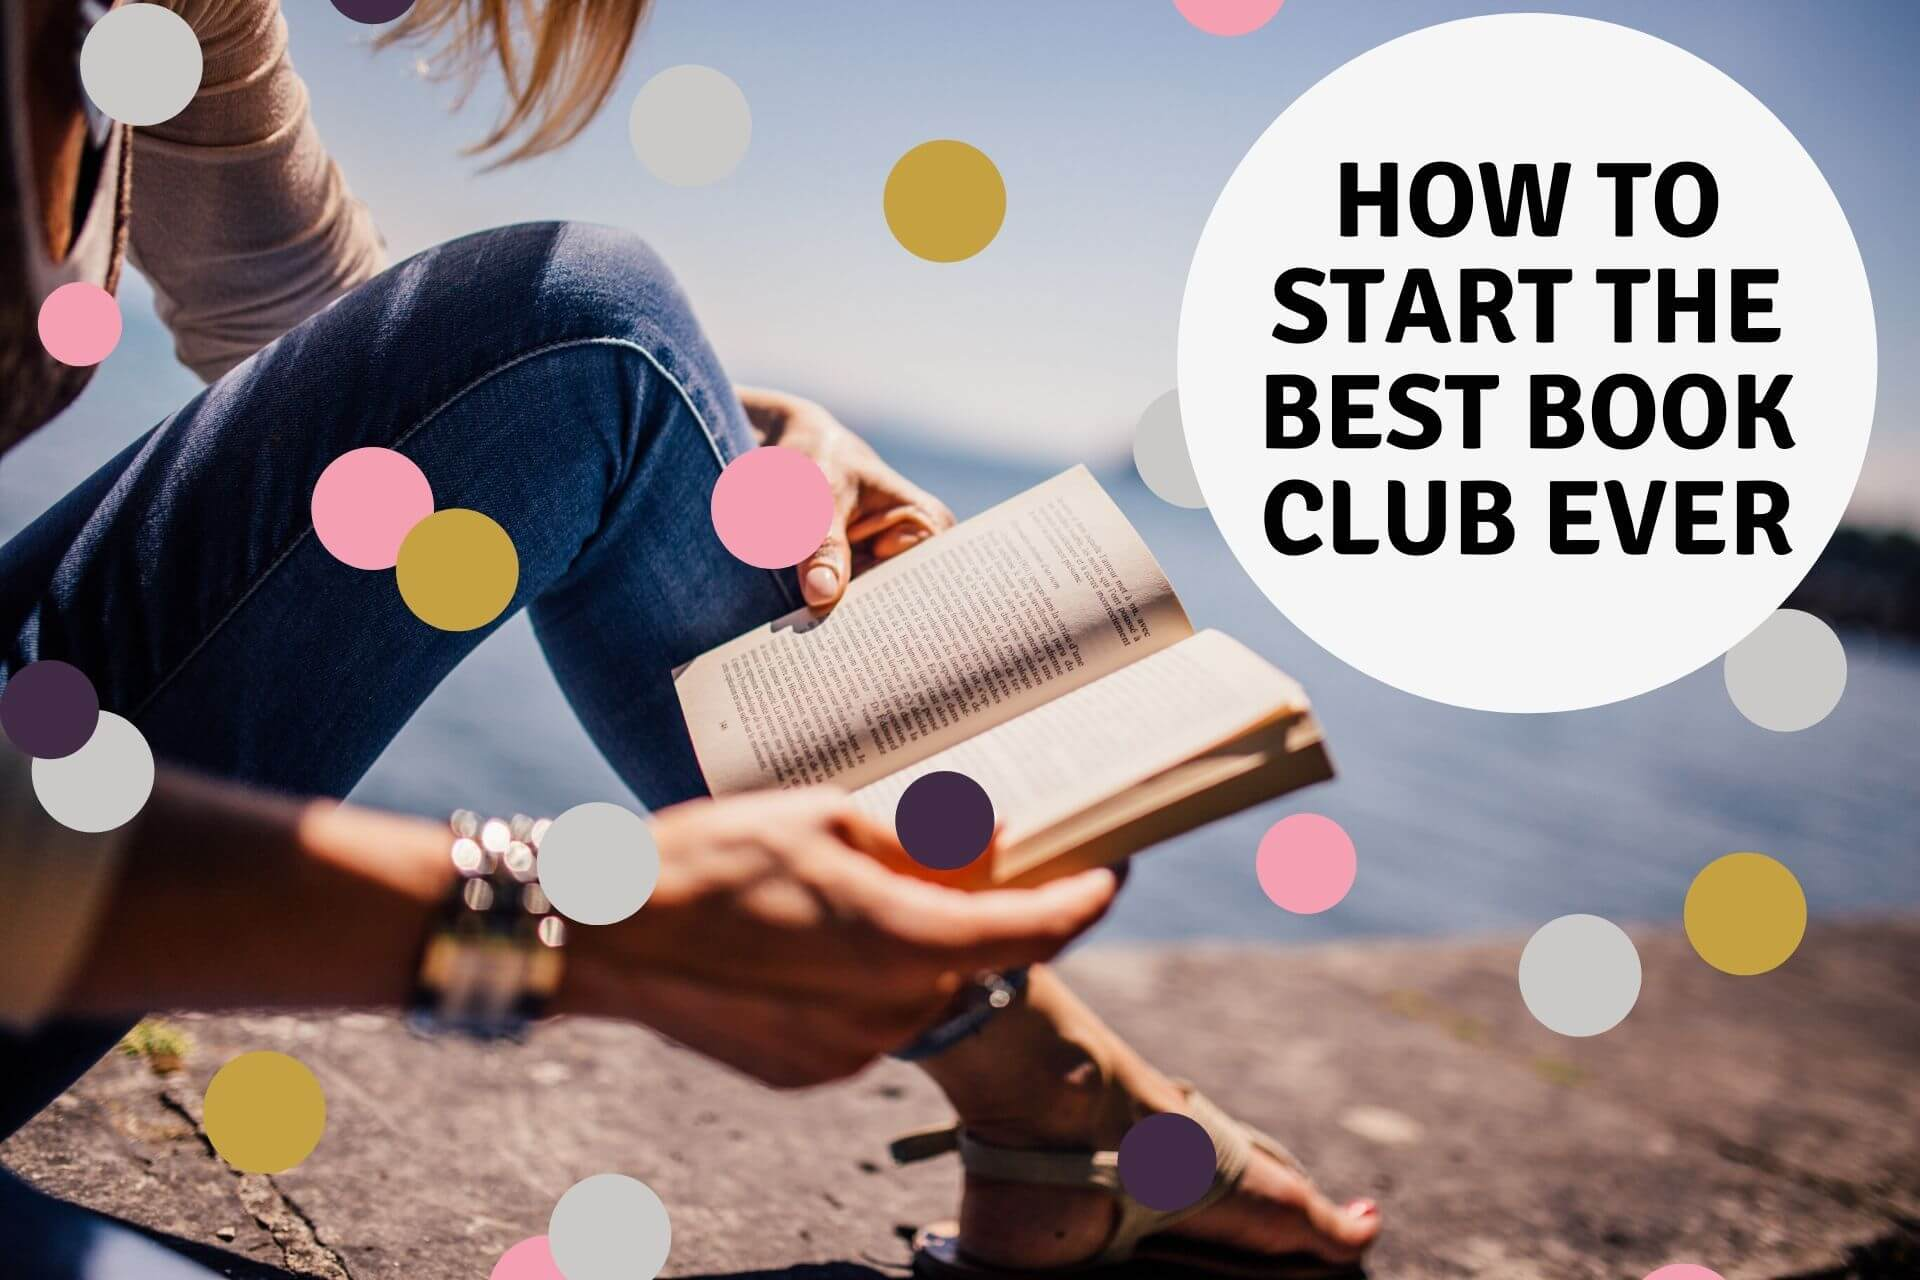 how to start the best book club ever - book club chat